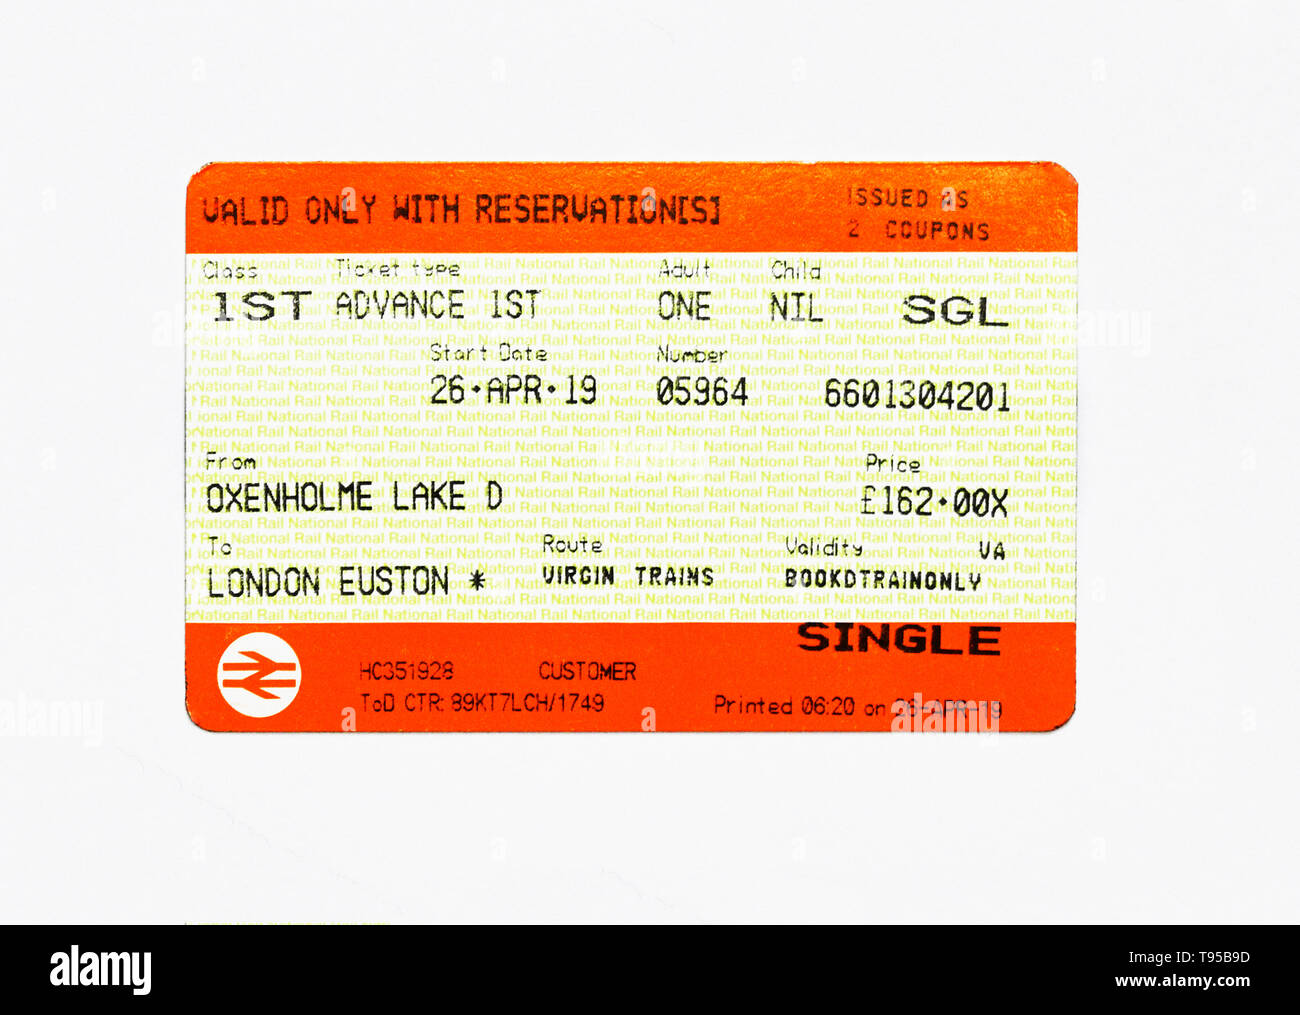 United Kingdom Train Ticket. Oxenholme Lake District to London Euston. 1st. Class. Adult. Advance 1st. Single. Virgin Trains. Price £162.00. - Stock Image